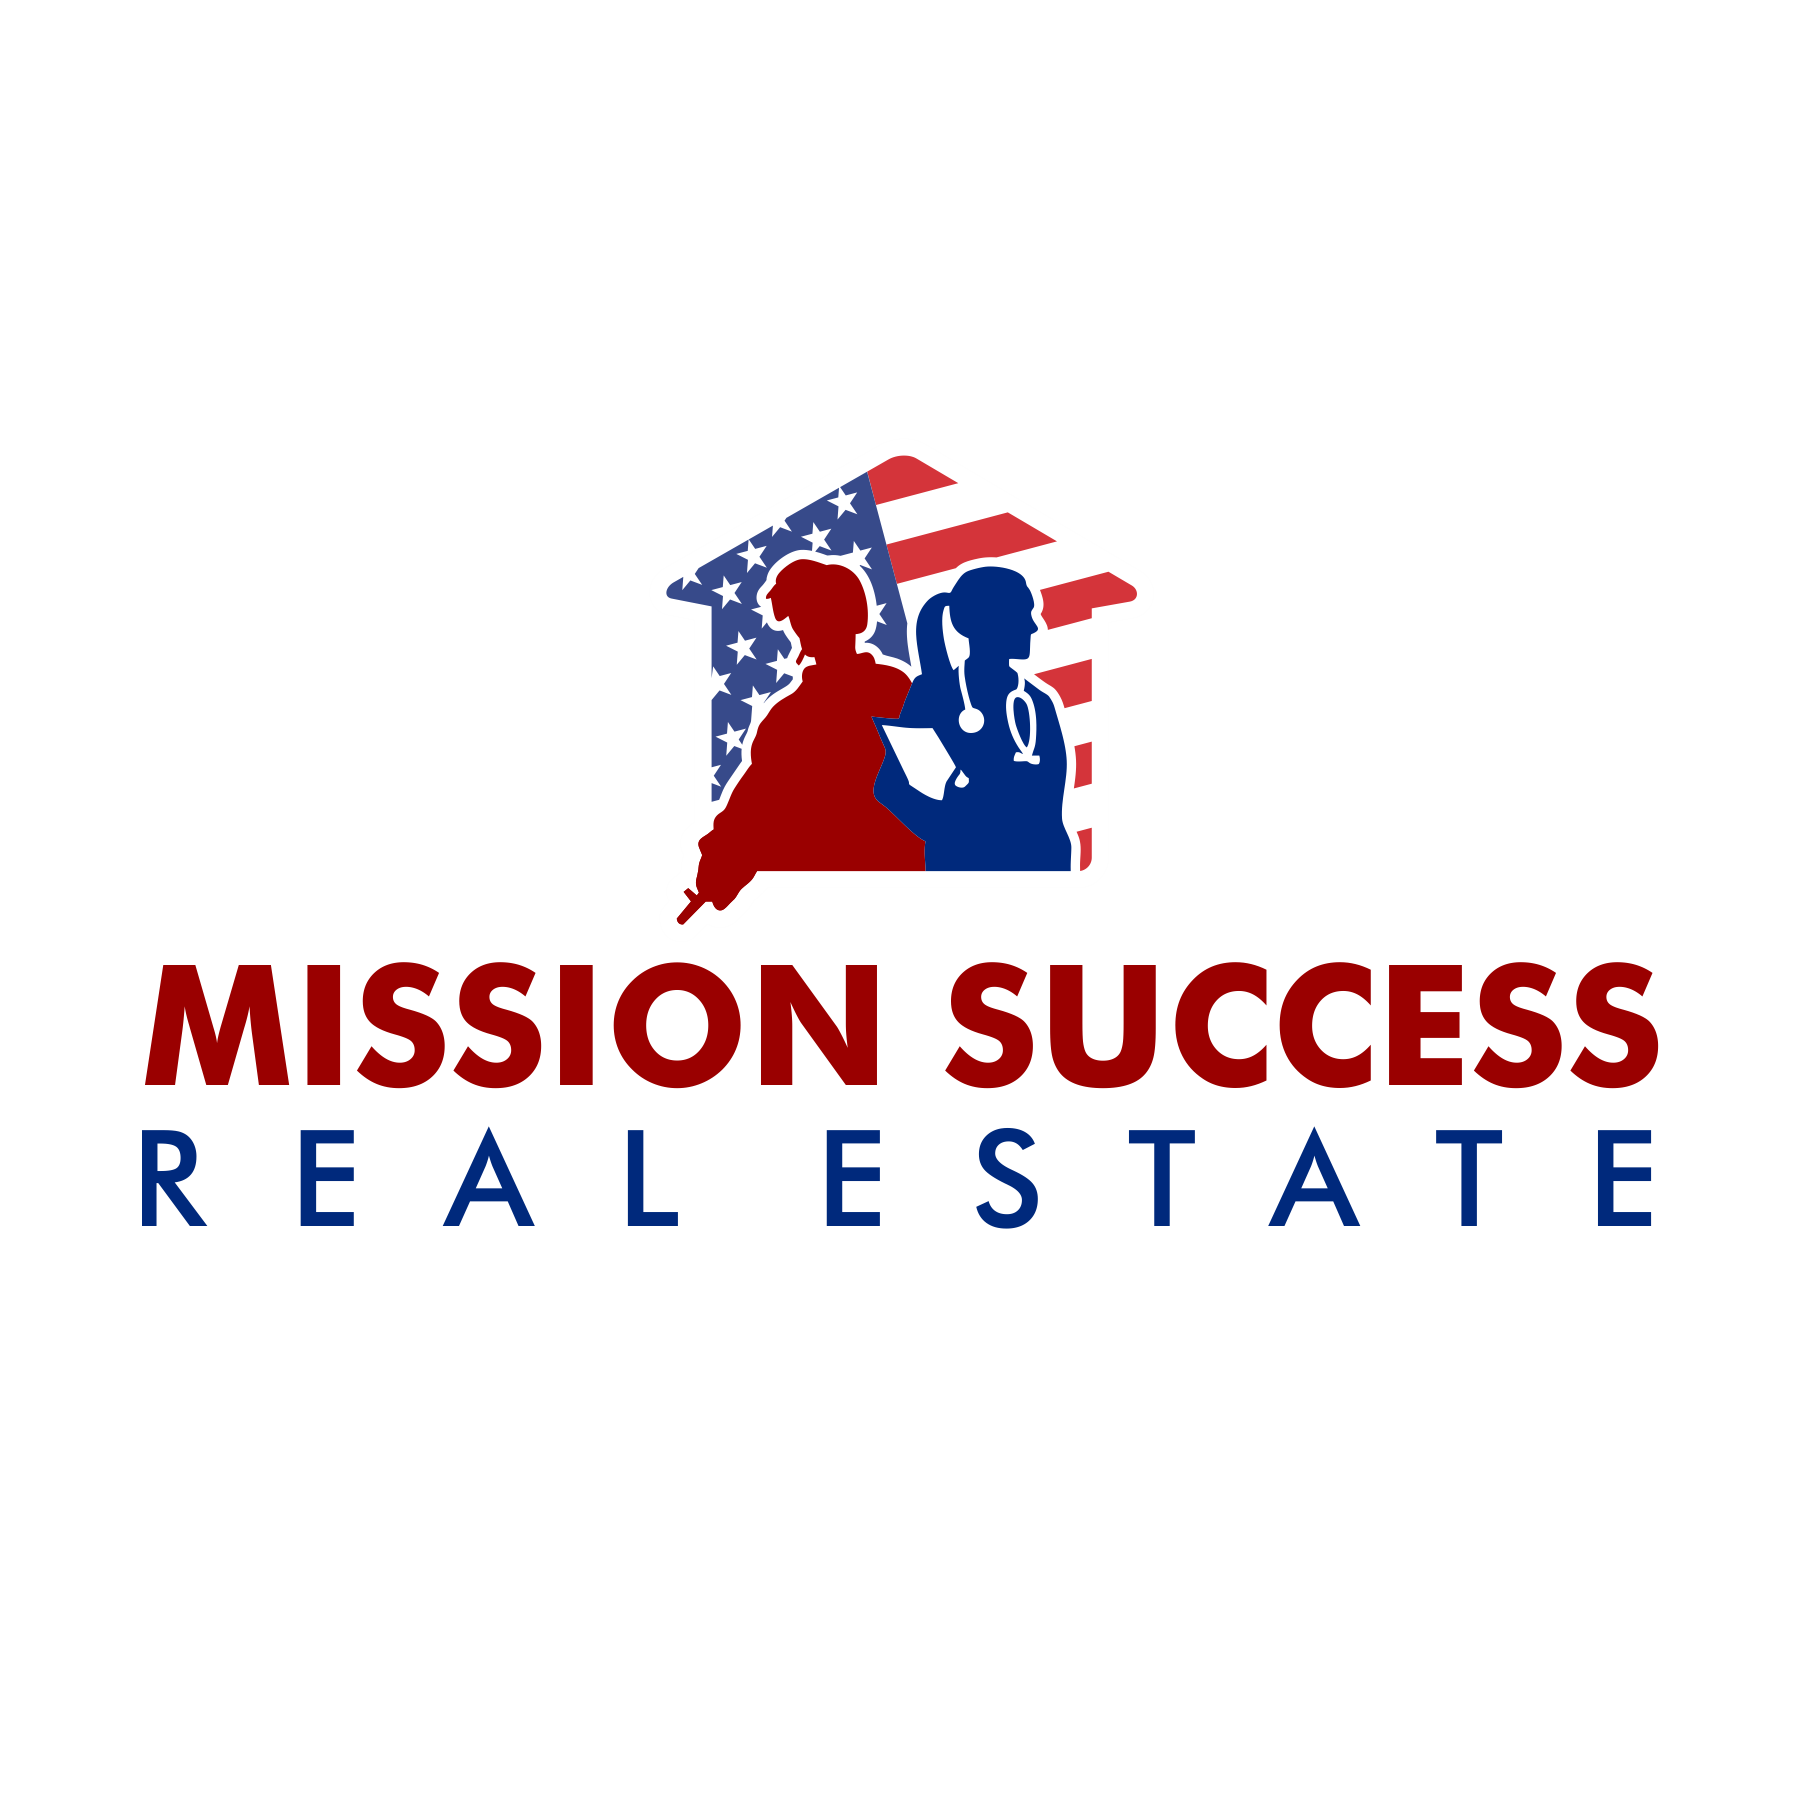 Mission Success Real Estate